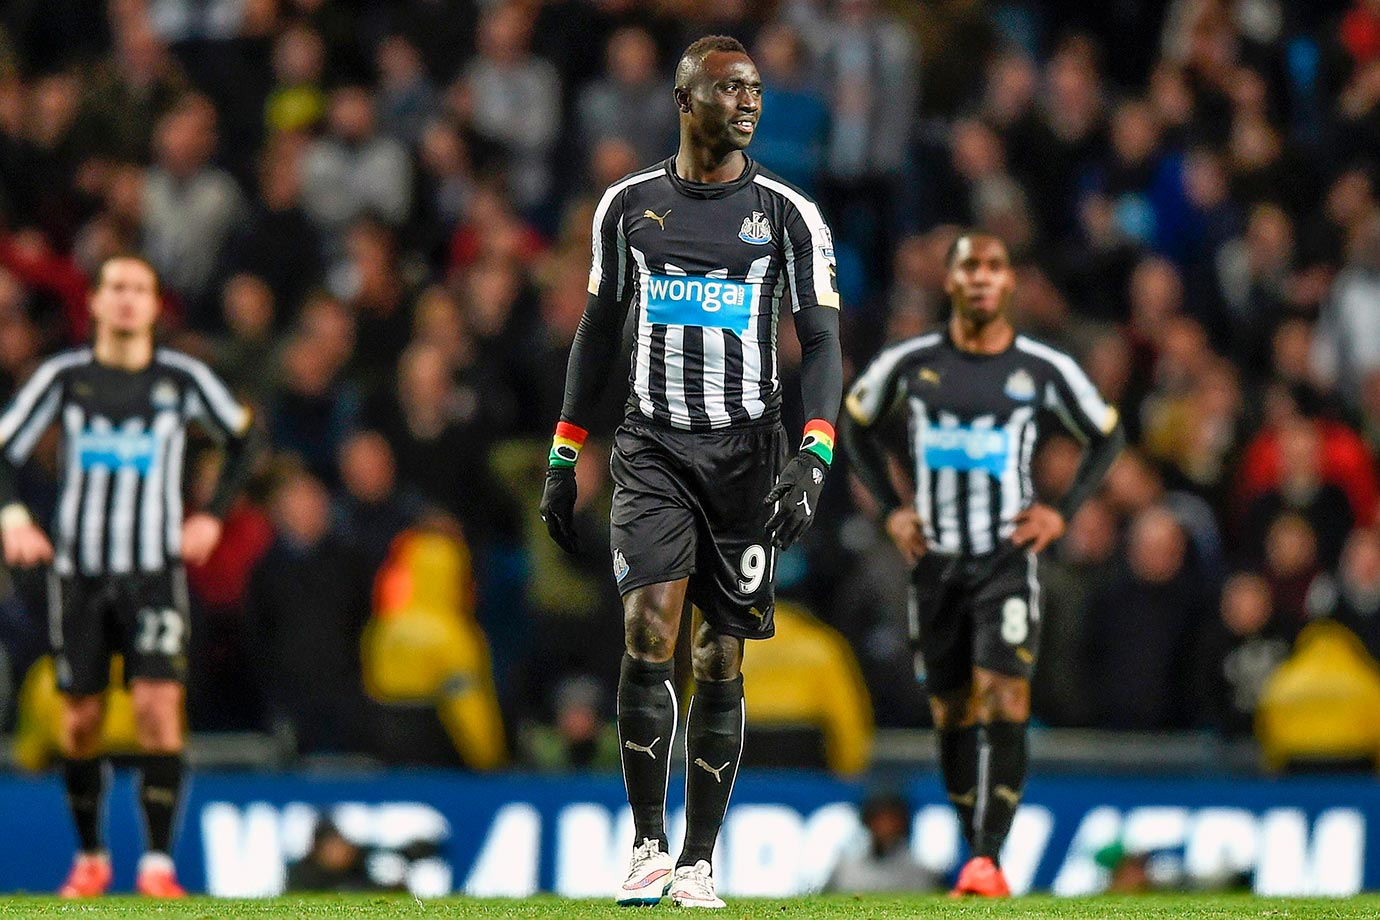 Newcastle midfielder Papiss Cisse told his longtime girlfriend he was taking a postseason vacation, then married another woman while he was away.